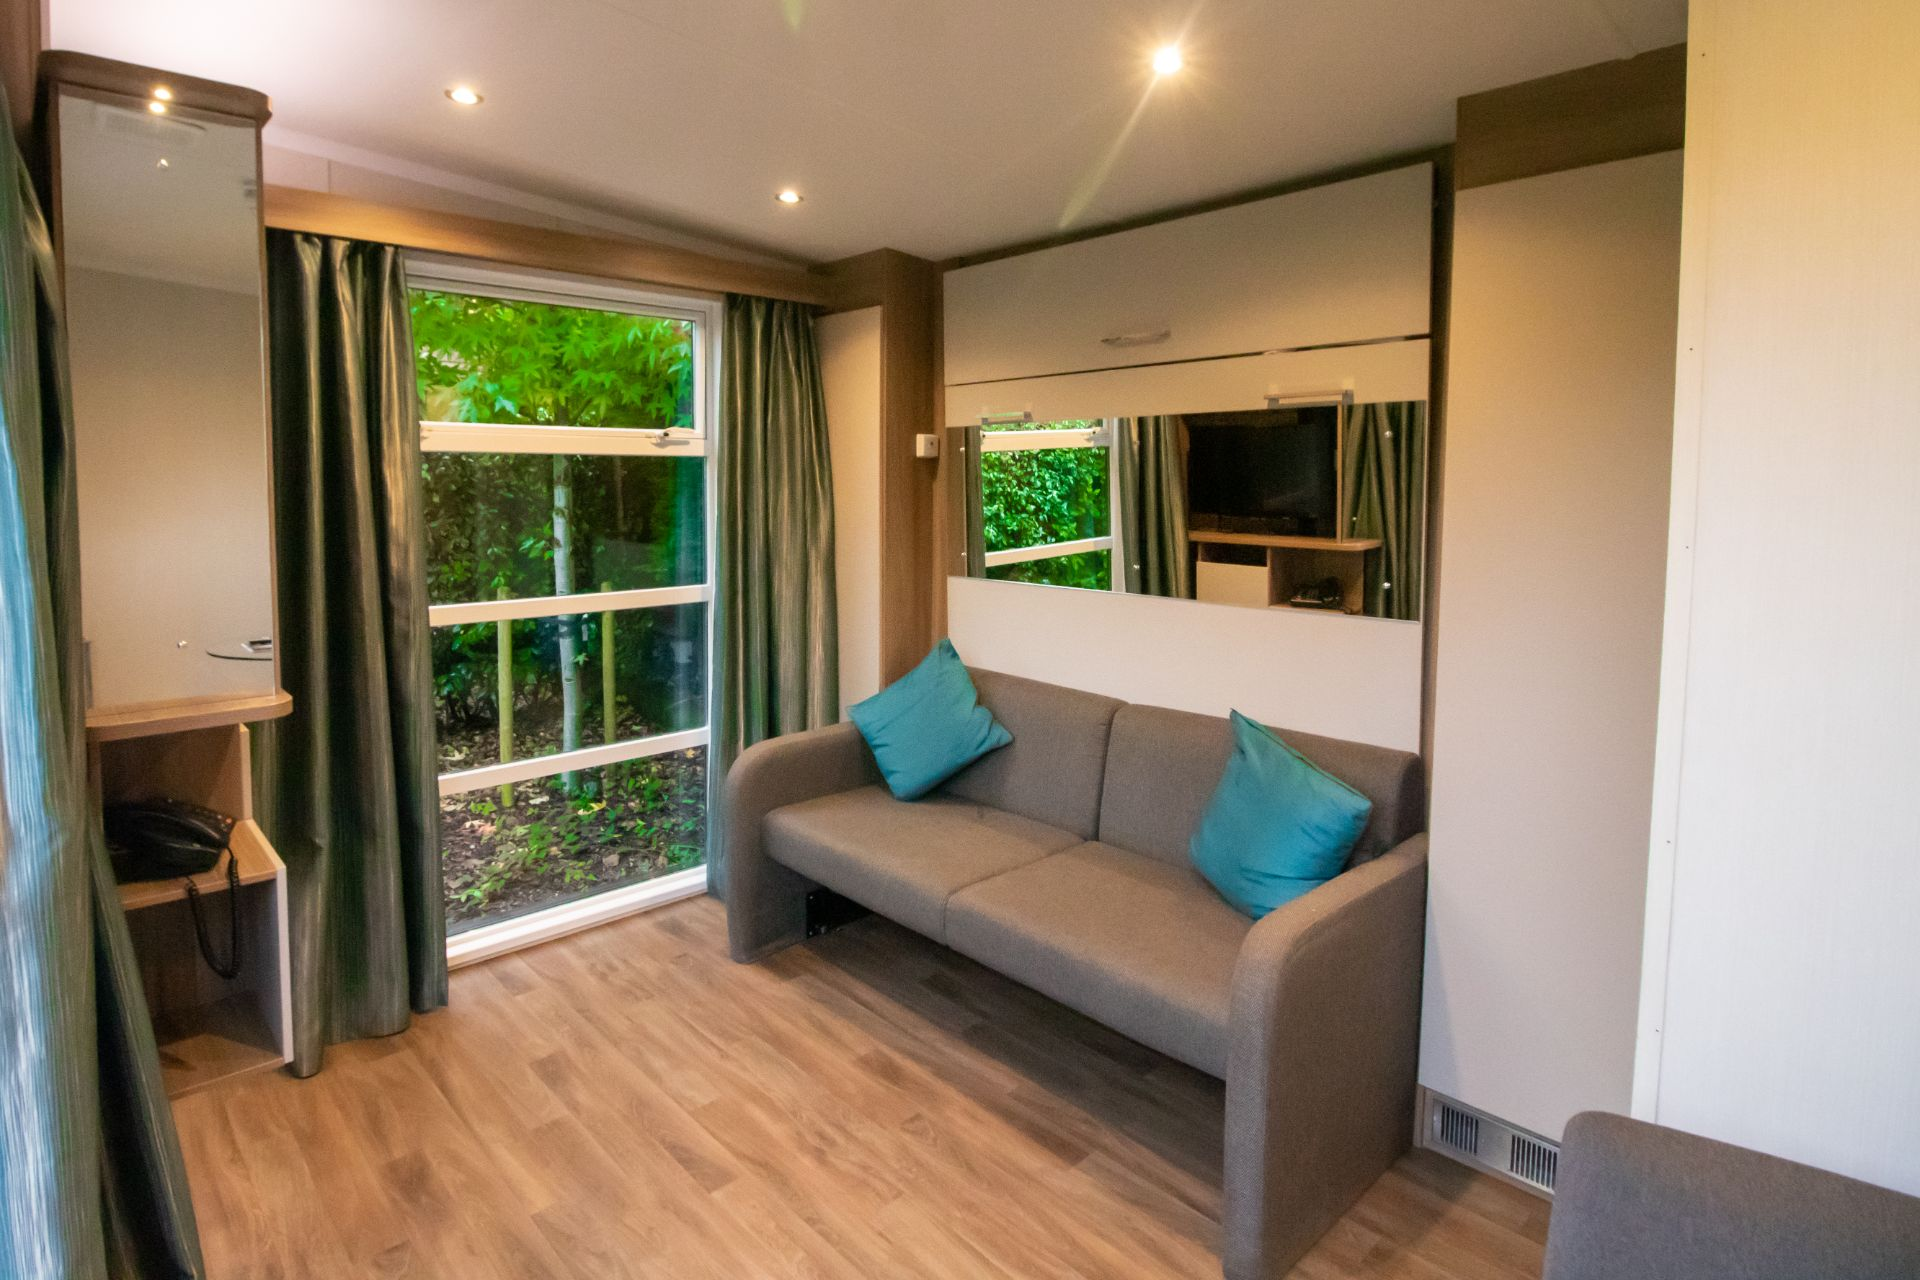 sofa-in-hotel-bedroom-in-oxwich-bay-hotel-secret-garden-pods